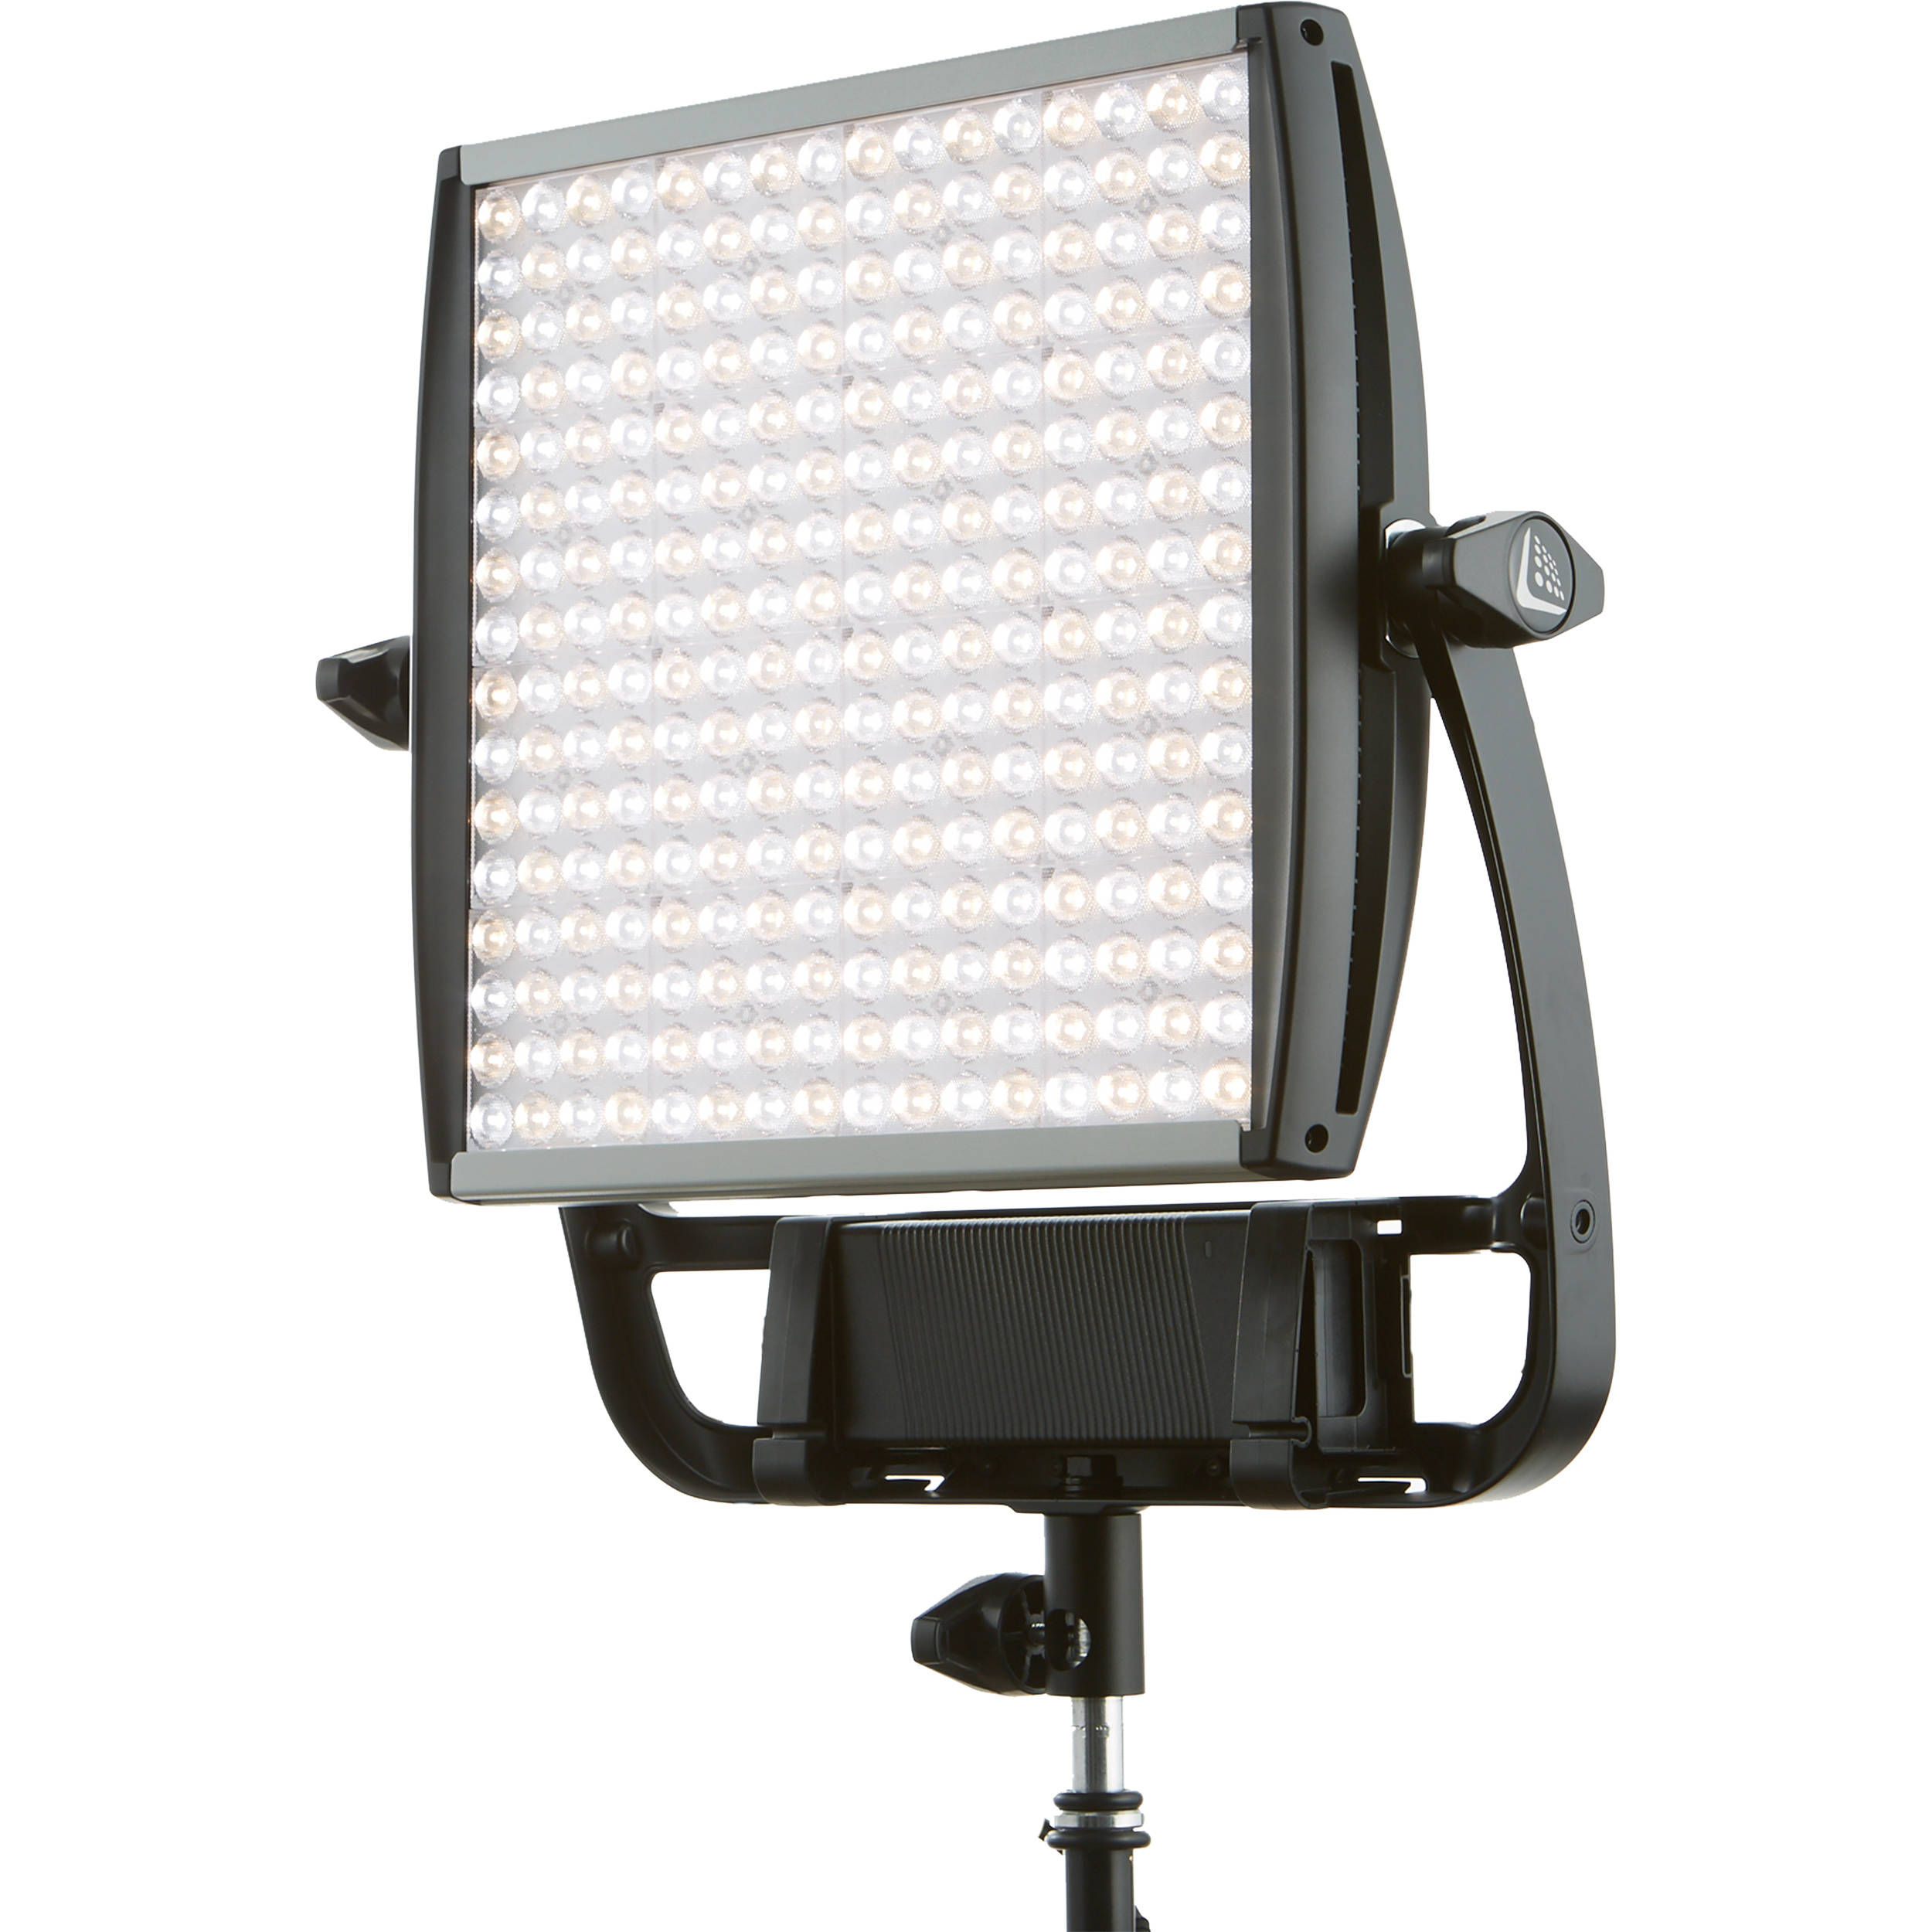 Led Lights Bh Photo Video Flash Light Studio Licht Chrome Pro 250 Litepanels Astra 6x Bi Color Panel